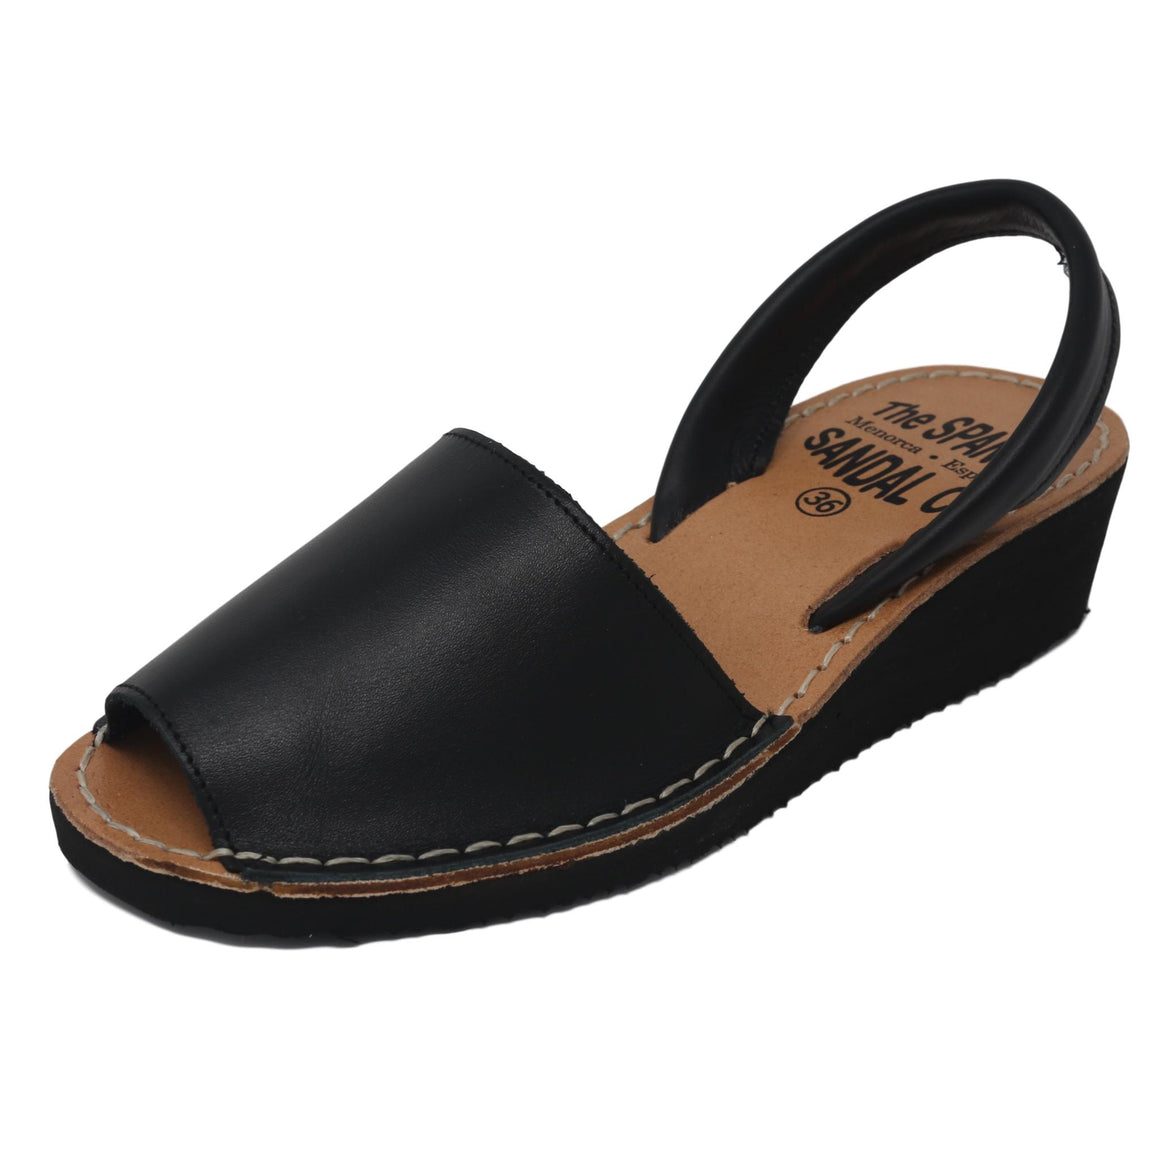 Black wedge sandals - diagonal view